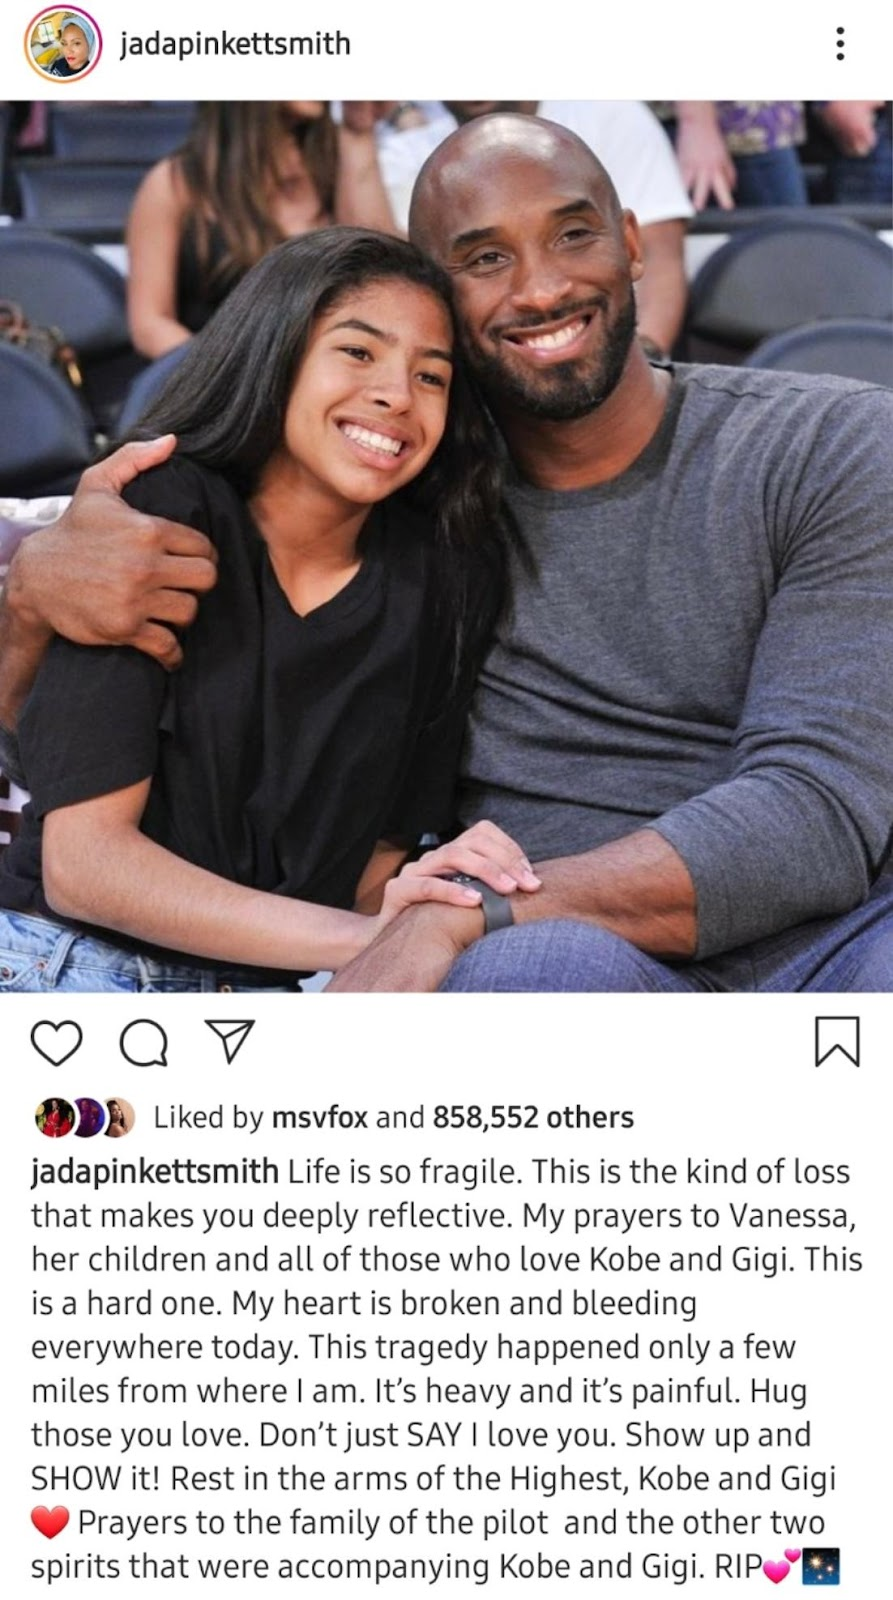 jadapinkettsmith Liked by msvfox and 858,552 others jadapinkettsmith Life is so fragile. This is the kind of loss that makes you deeply reflective. My prayers to Vanessa, her children and all of those who love Kobe and Gigi. This is a hard one. My heart is broken and bleeding everywhere today. This tragedy happened only a few miles from where I am. It's heavy and it's painful. Hug those you love. Don't just SAY I love you. Show up and SHOW it! Rest in the arms of the Highest, Kobe and Gigi Prayers to the family of the pilot and the other two spirits that were accompanying Kobe and Gigi. RIPCØ